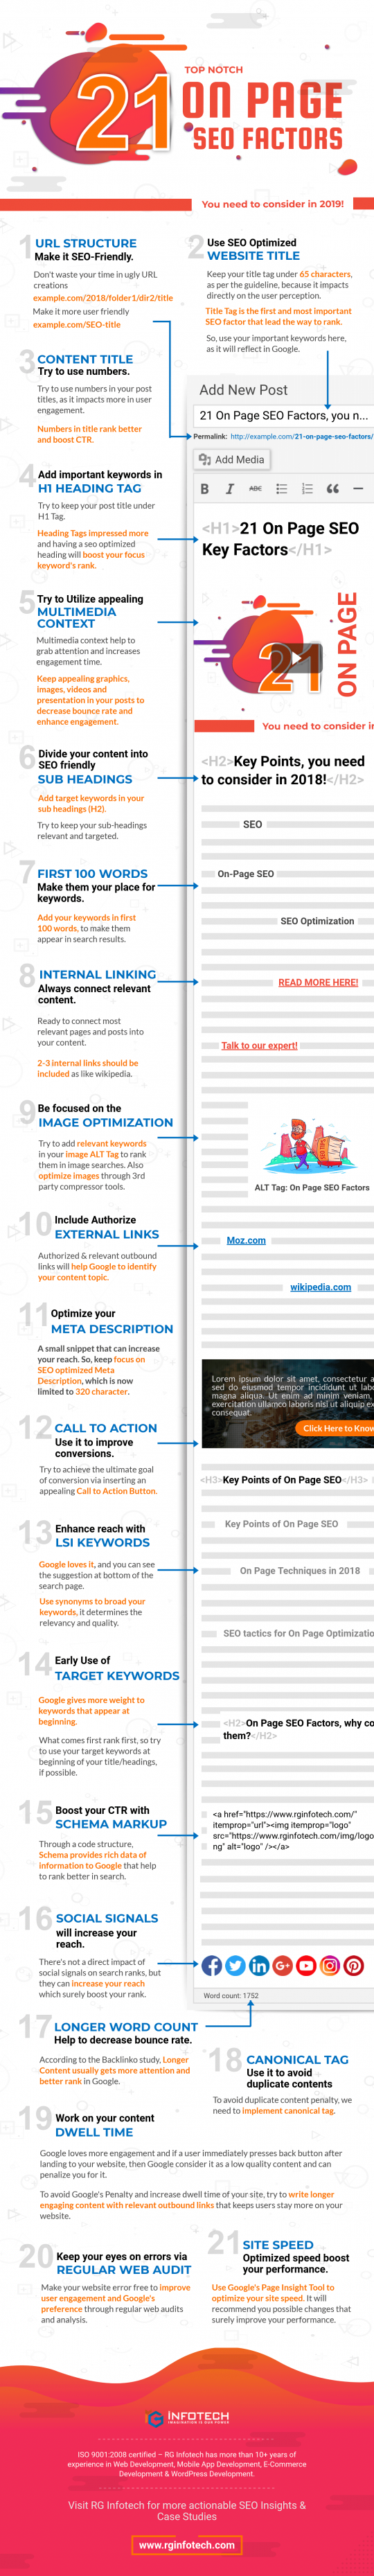 Top notch ON-PAGE SEO FACTORS, you should acquire in 2019! [Infographic]